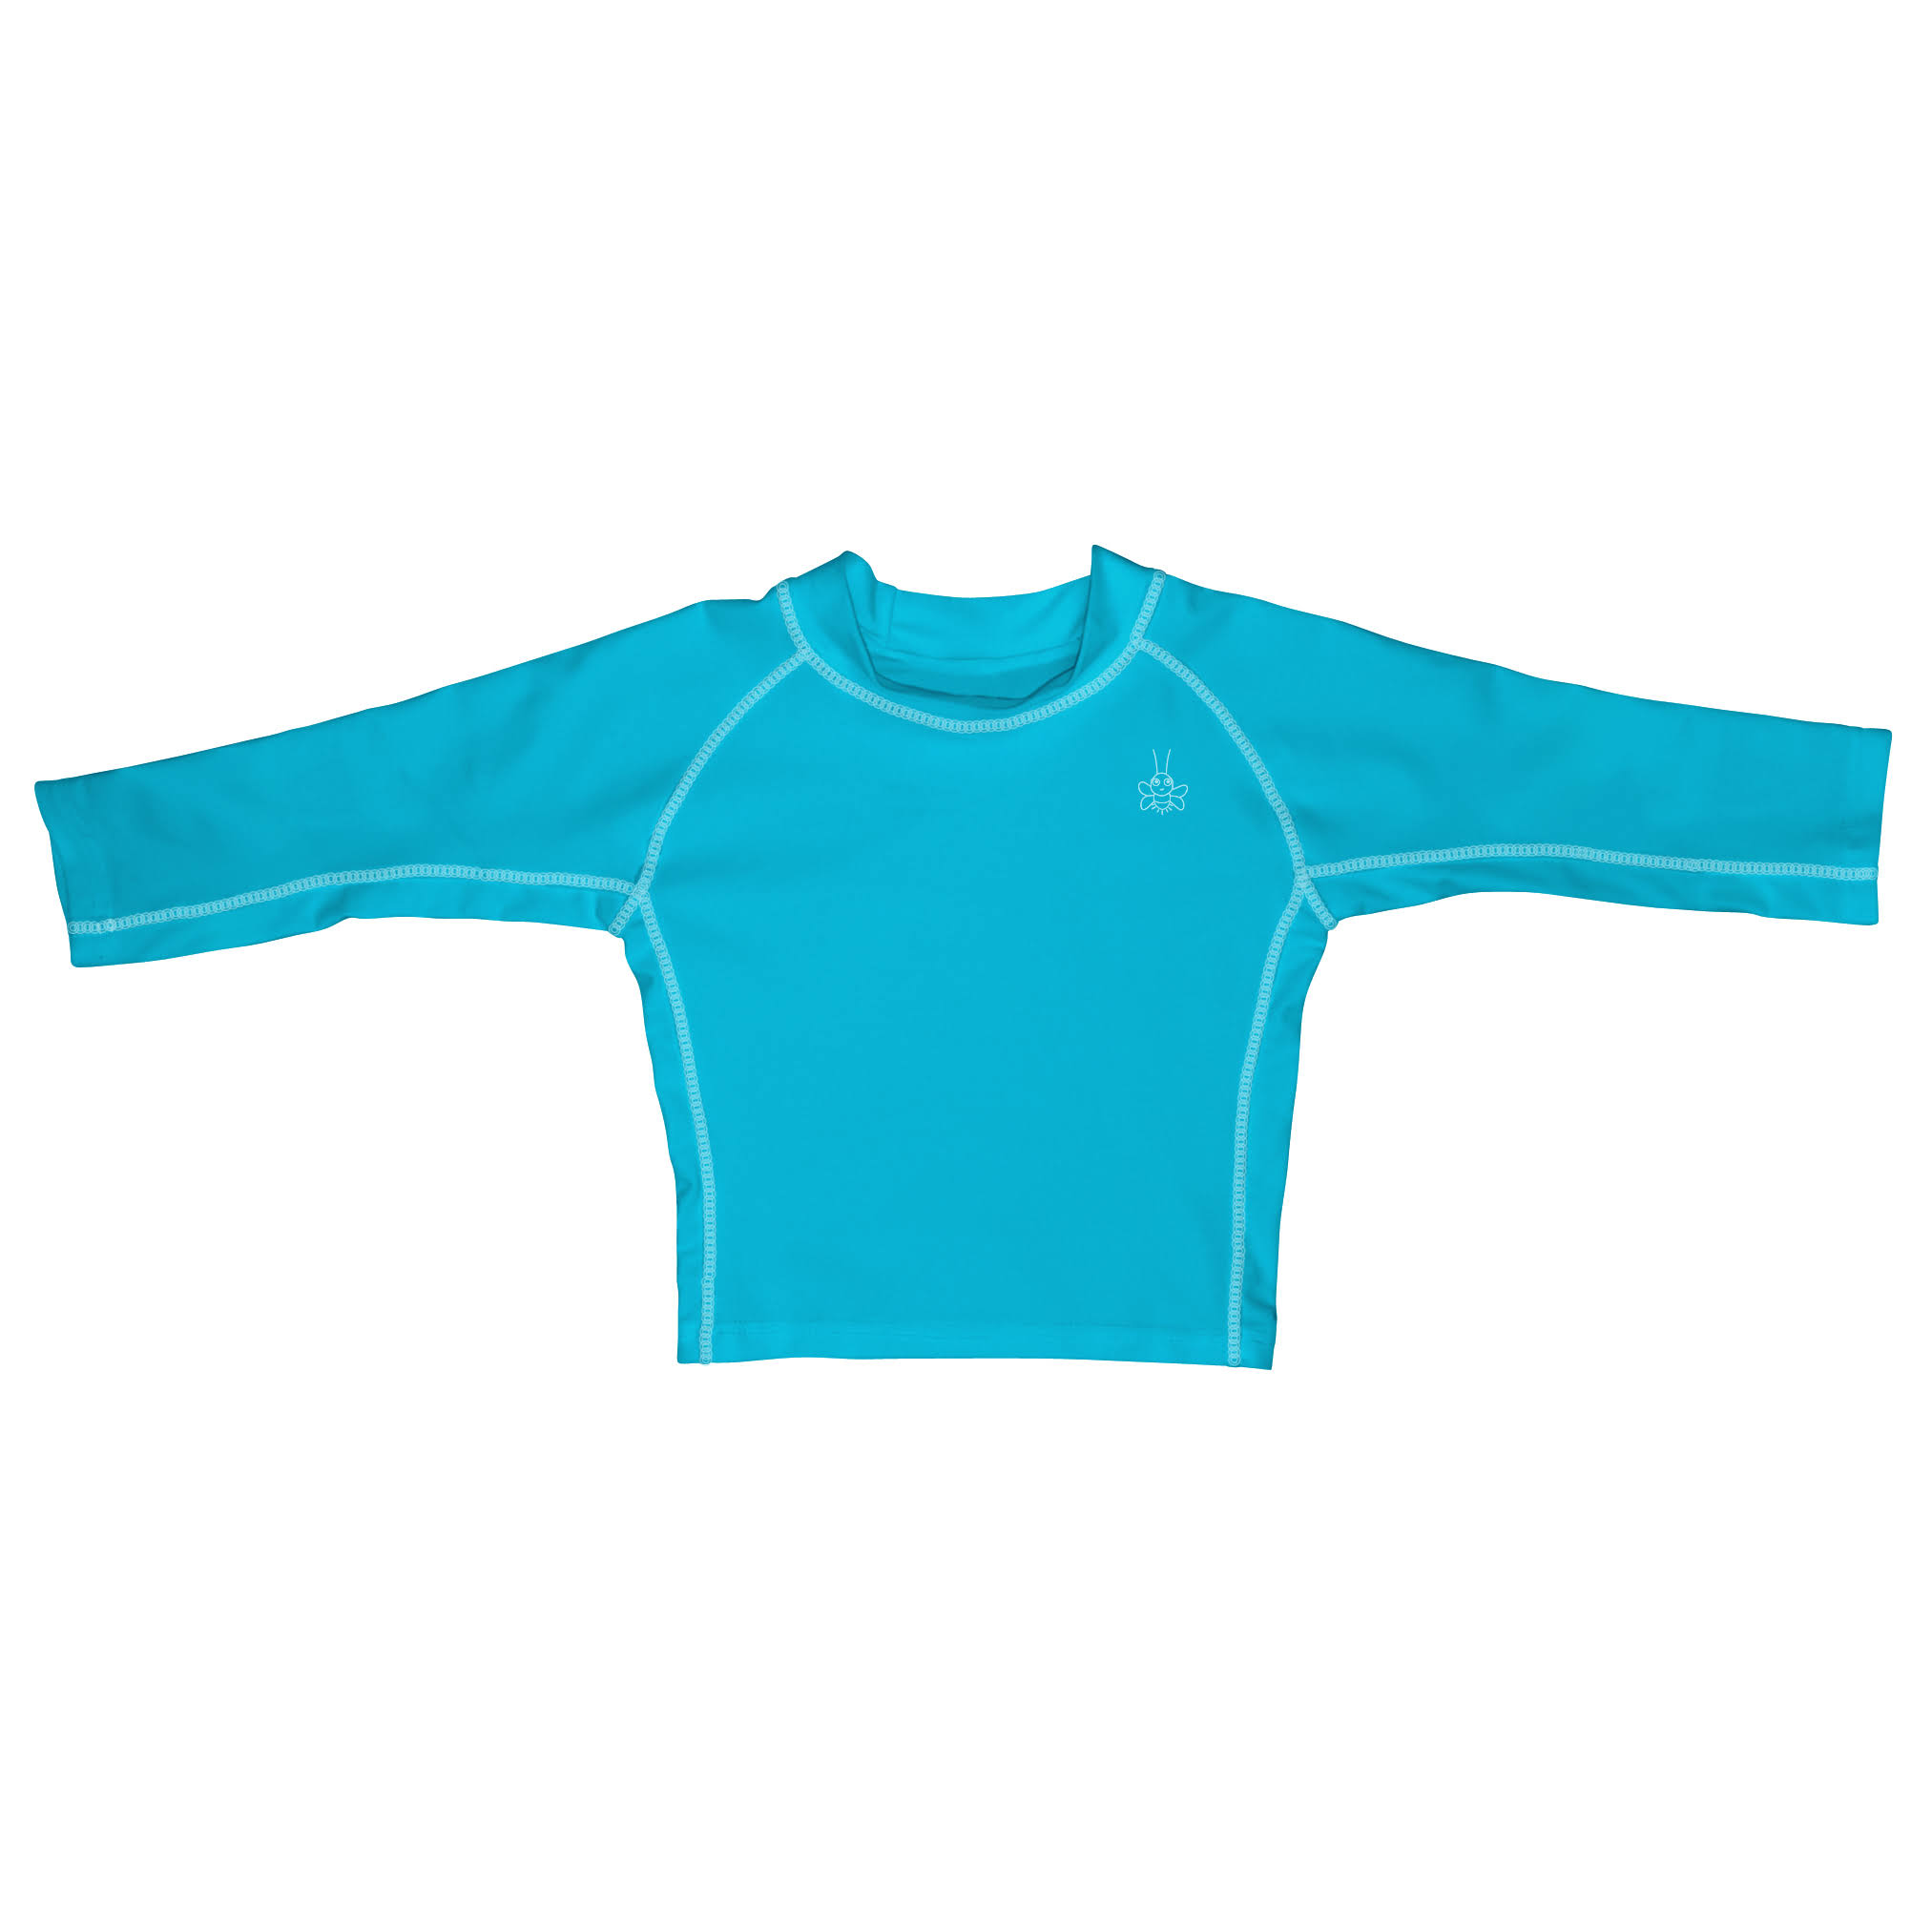 I Play - Long Sleeve Rashguard - 18M - Aqua